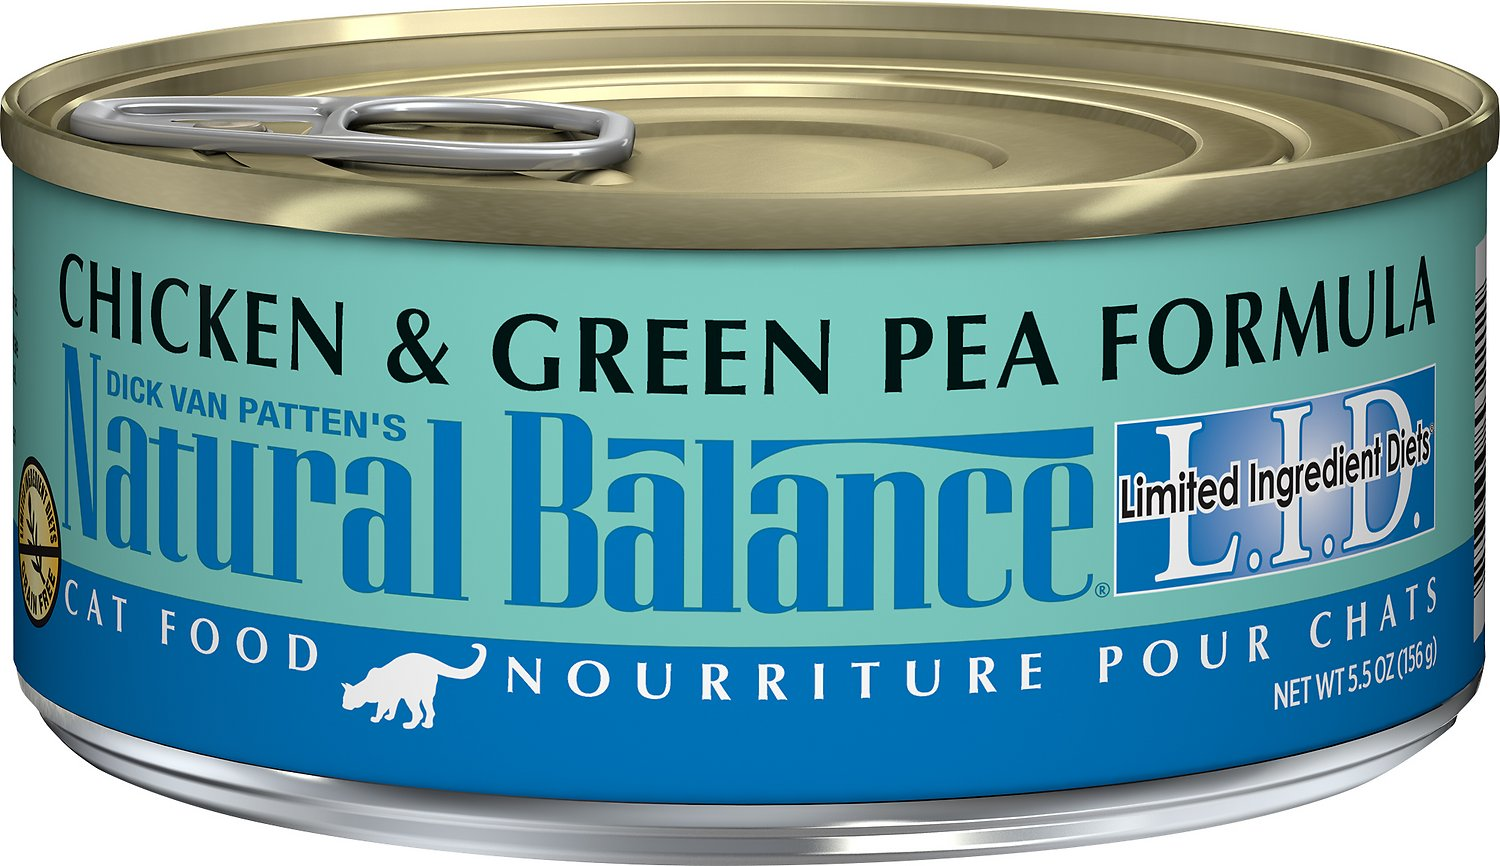 Natural Balance L.I.D. Limited Ingredient Diets Chicken & Green Pea Formula Grain-Free Canned Cat Food Image